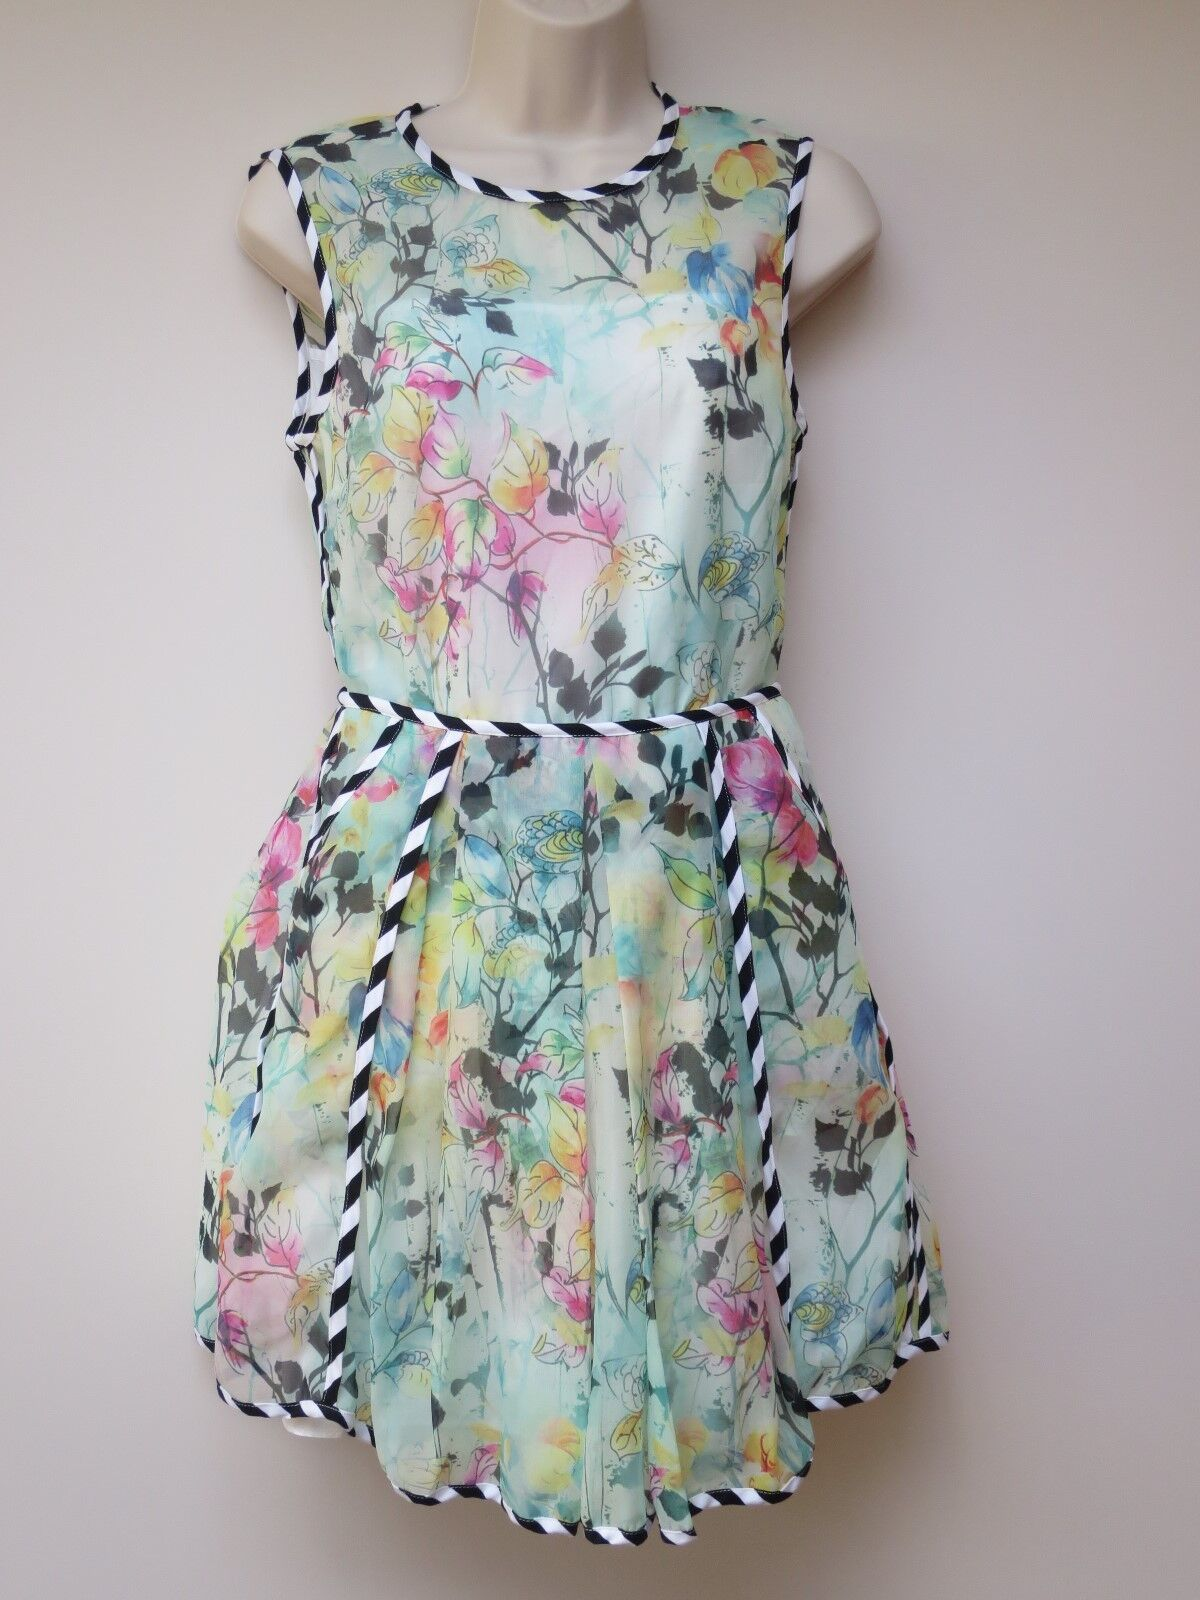 Asos party dress, size 10